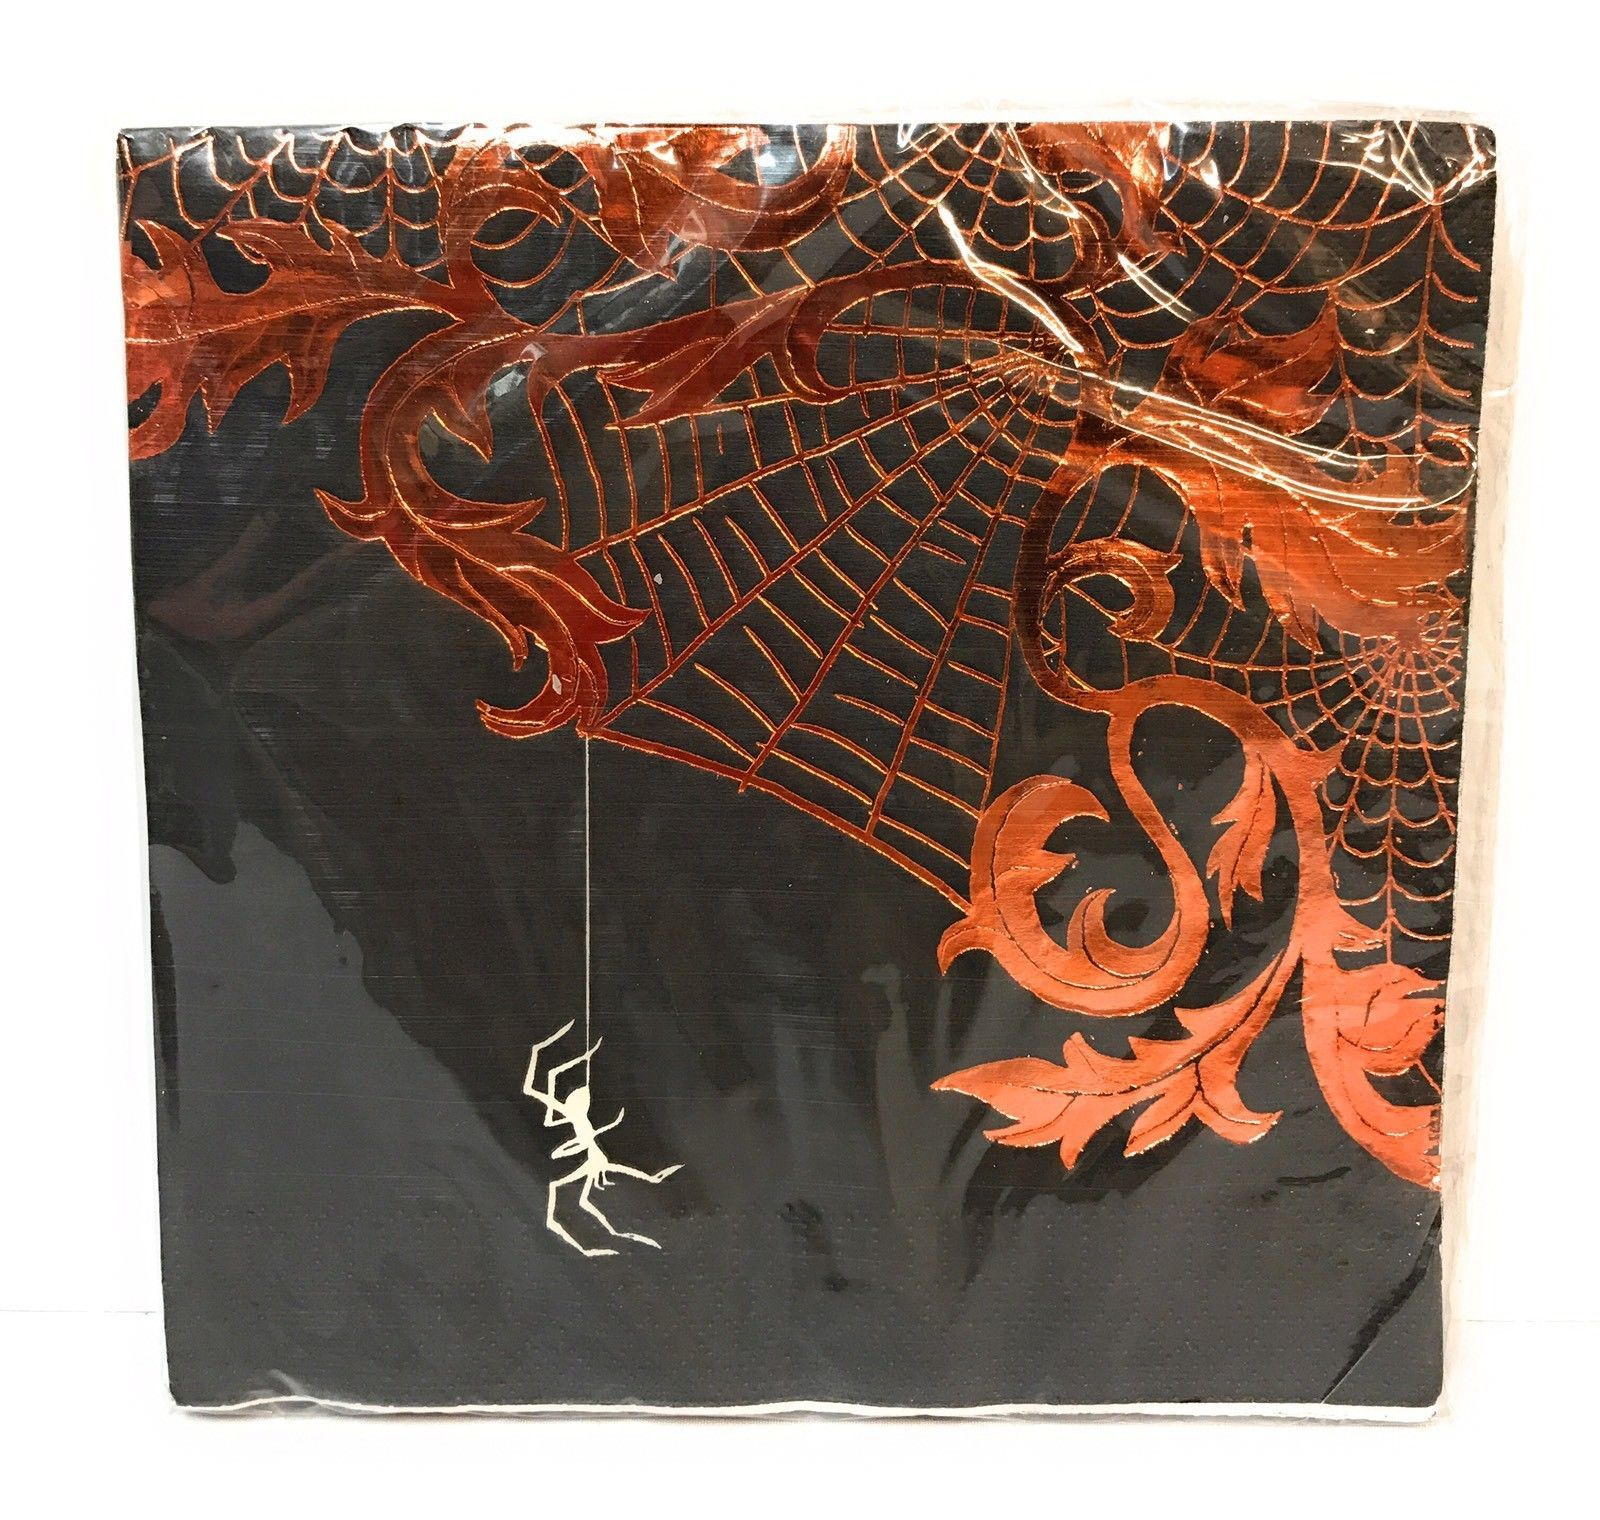 Skull Spider Spiderweb Party Pack Dinner Plates Lunch Napkins Cups Copper Foil